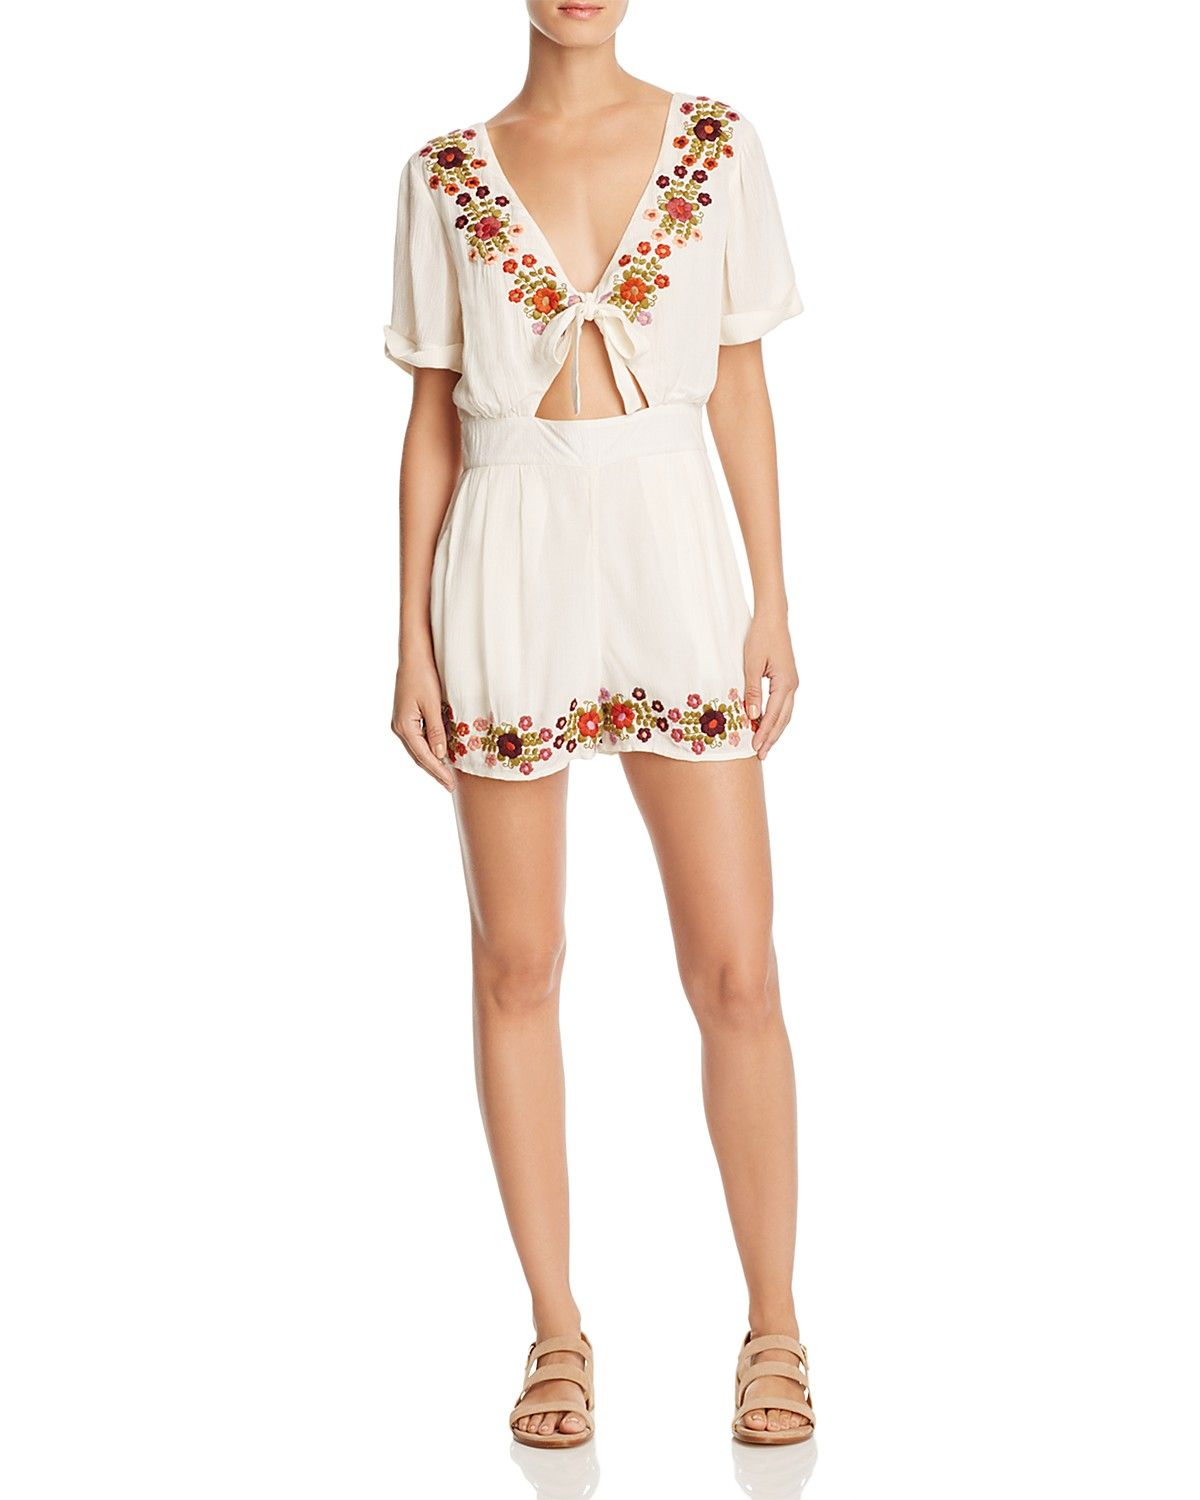 58870b7bee4 Tularosa Rowley Embroidered Romper